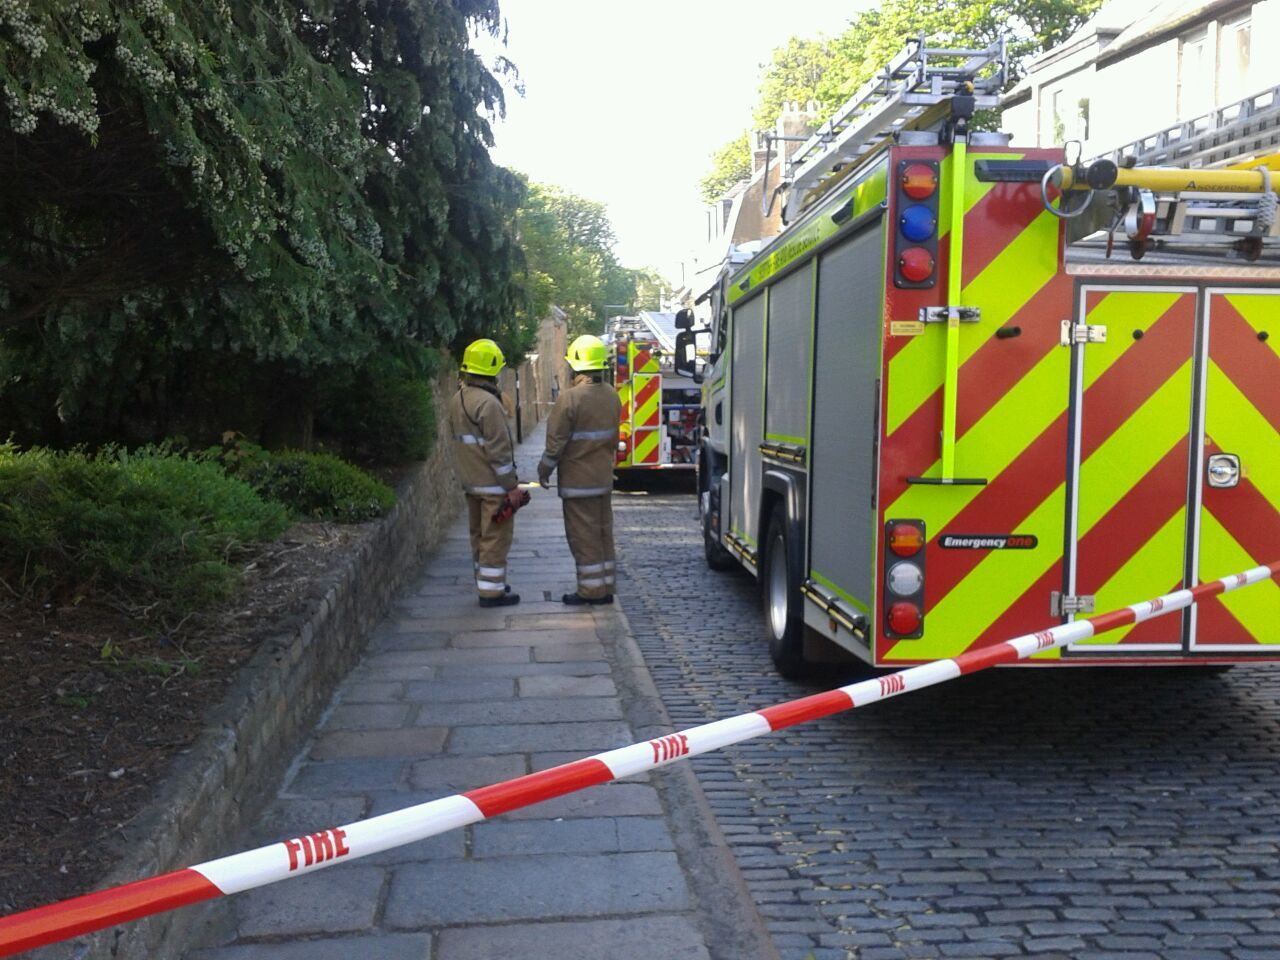 A woman was hospitalised following the fire in Aberdeen